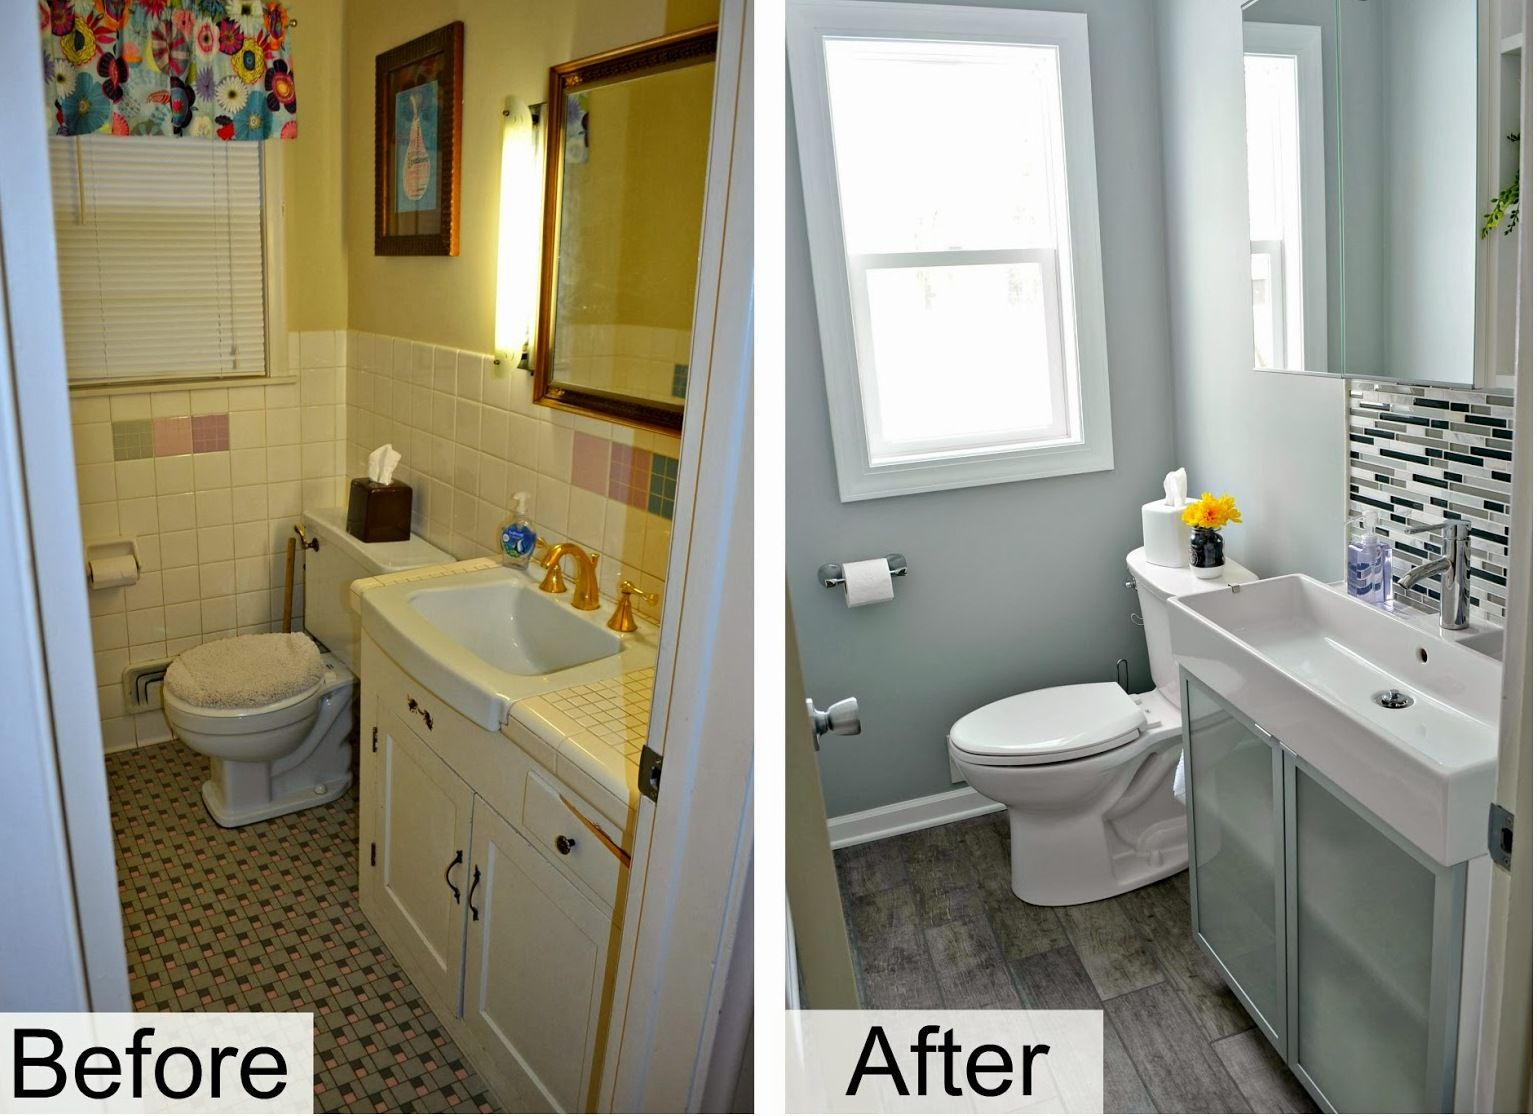 Bathroom Renovation Ideas Before And After diy bathroom remodel ideas for average people | diy bathroom